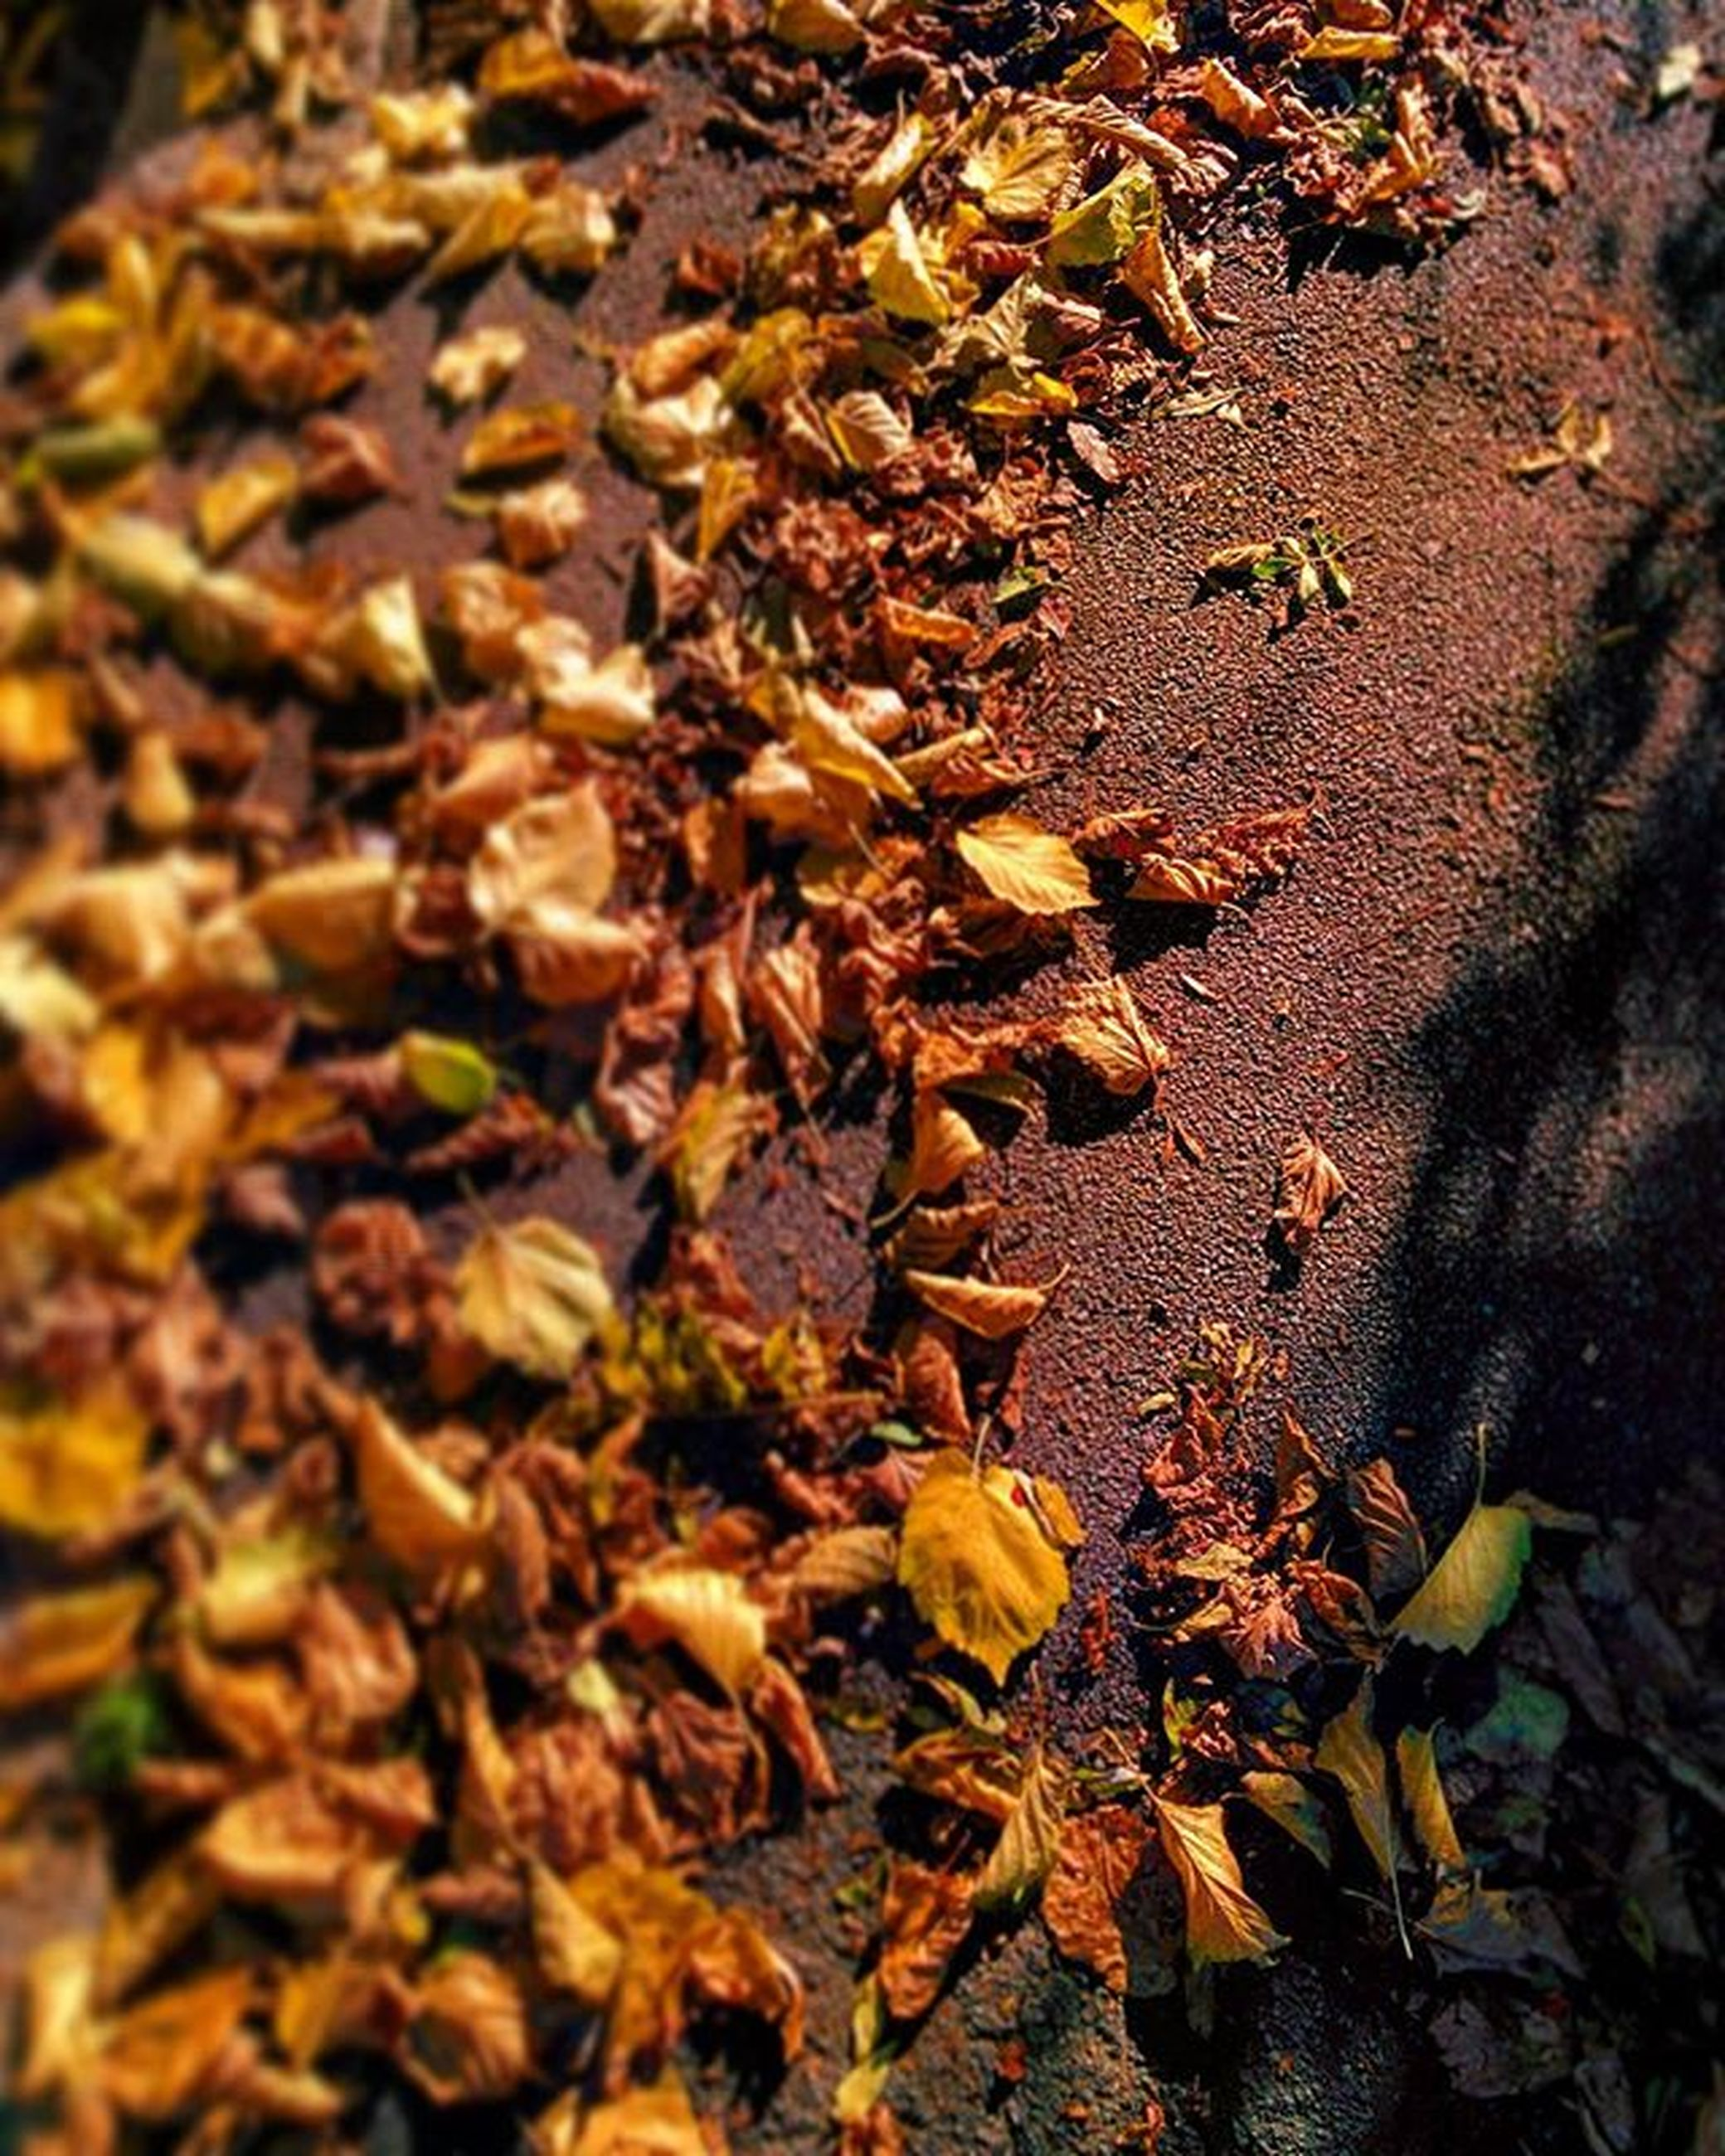 leaf, abundance, dry, high angle view, nature, close-up, full frame, growth, selective focus, outdoors, day, backgrounds, no people, field, large group of objects, sunlight, plant, fragility, leaves, textured